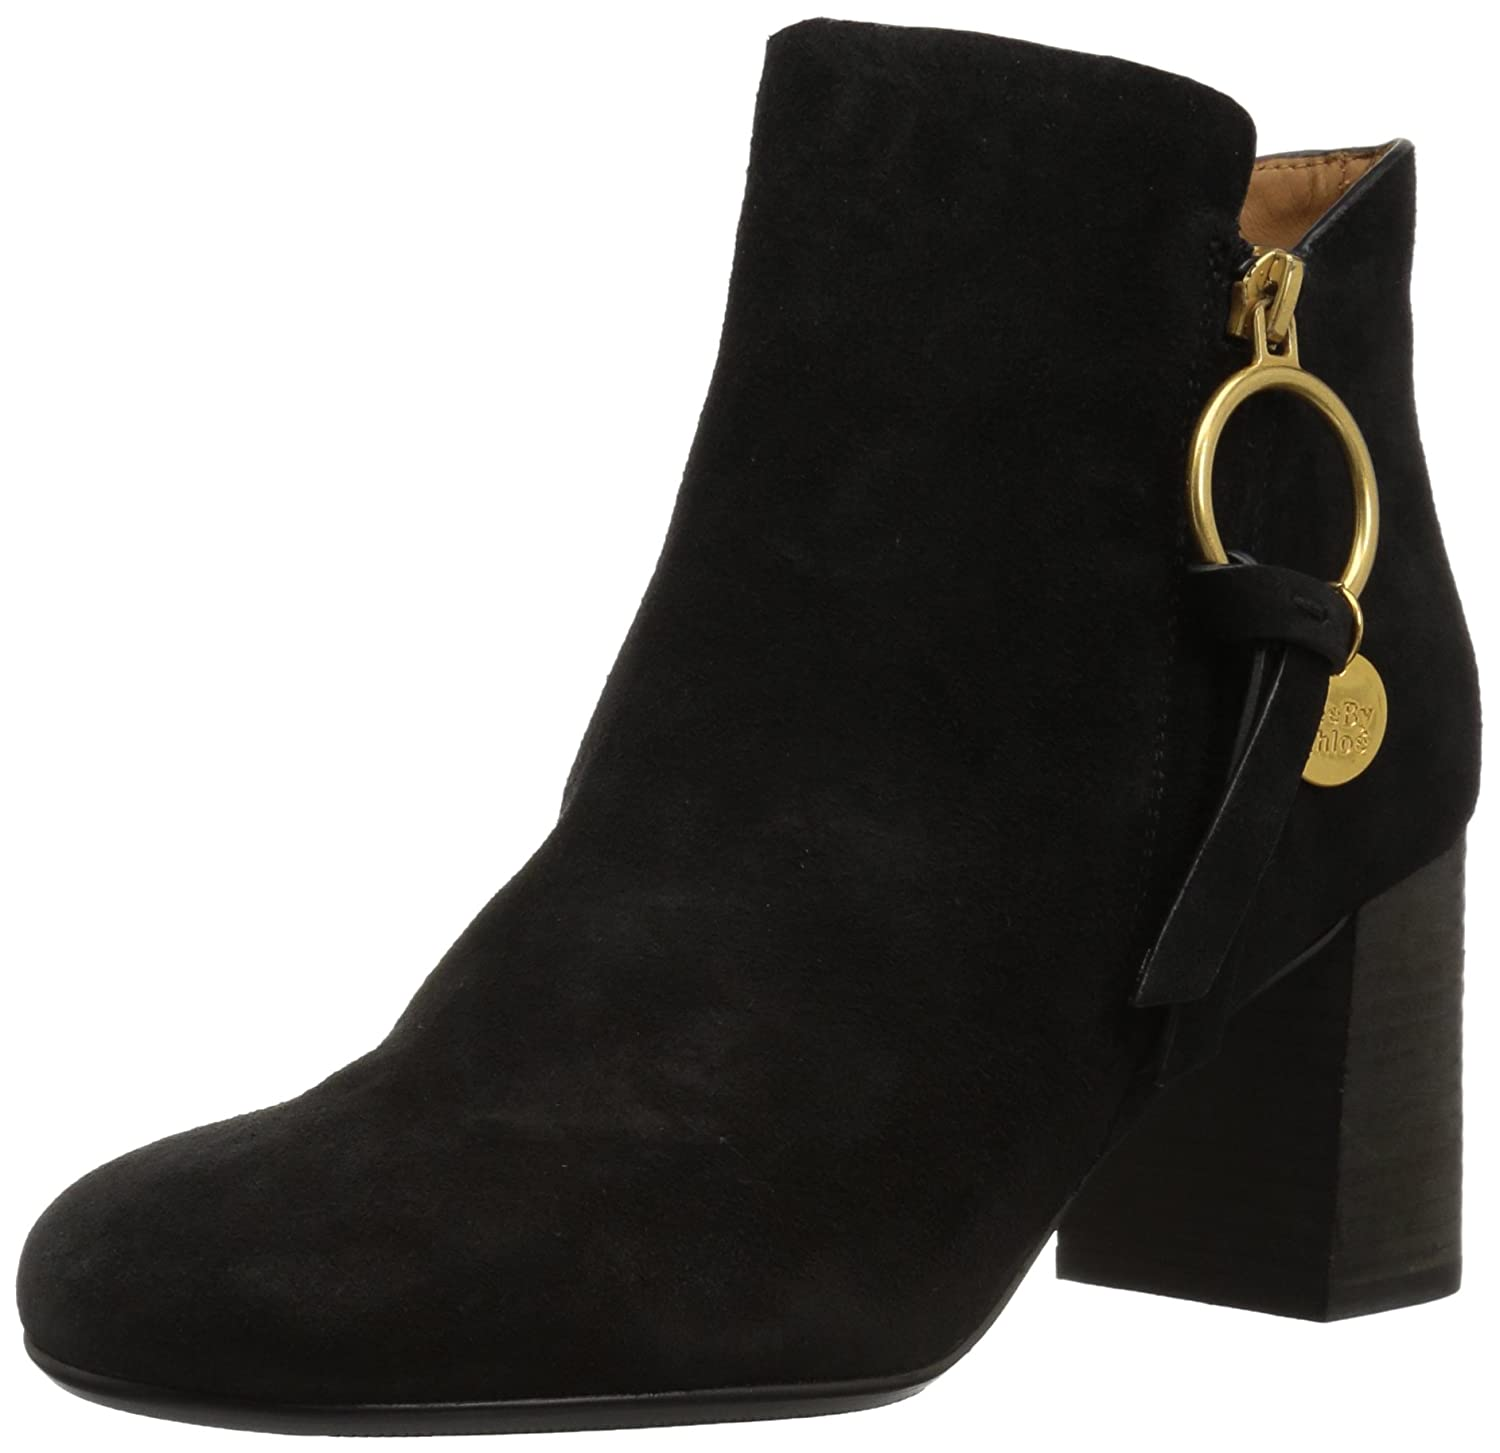 See by Chloé Women's Louise Midheel Ankle Boot B072K6Y2SQ 39.5 M EU (9.5 US)|Black